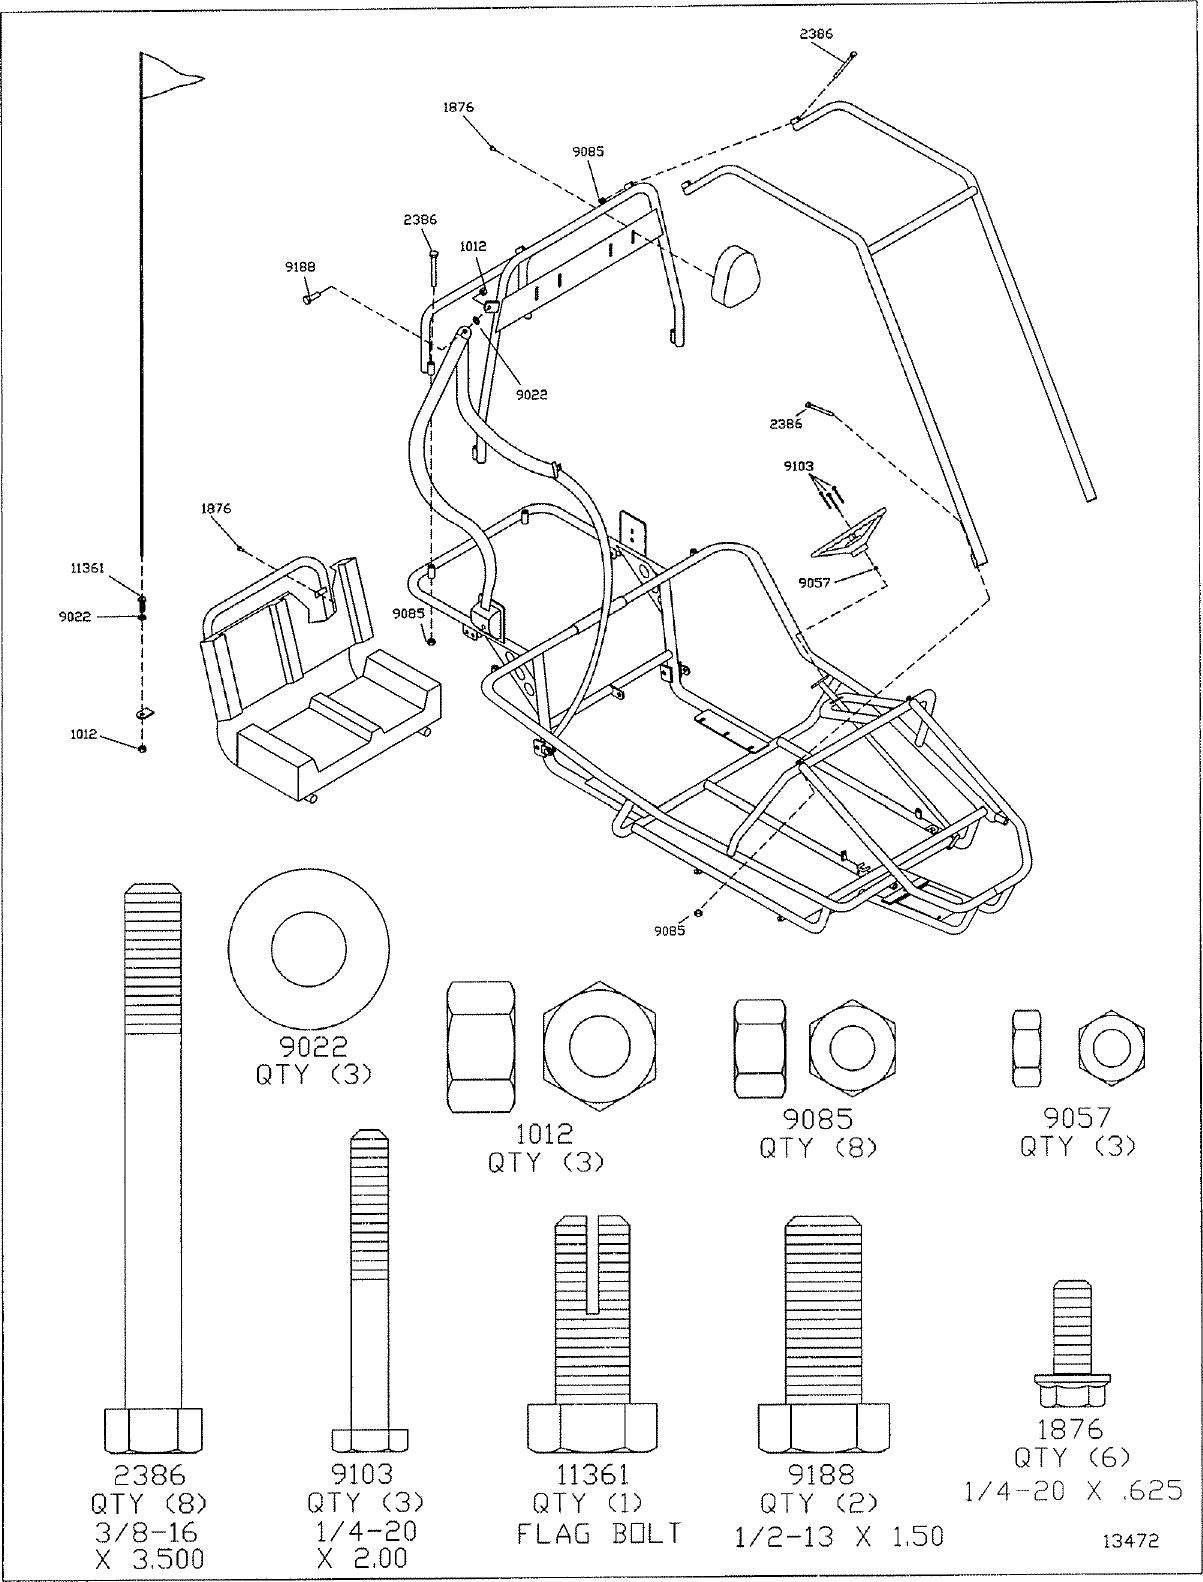 Trailmaster 150 Xrs Wiring Diagram from usermanual.wiki